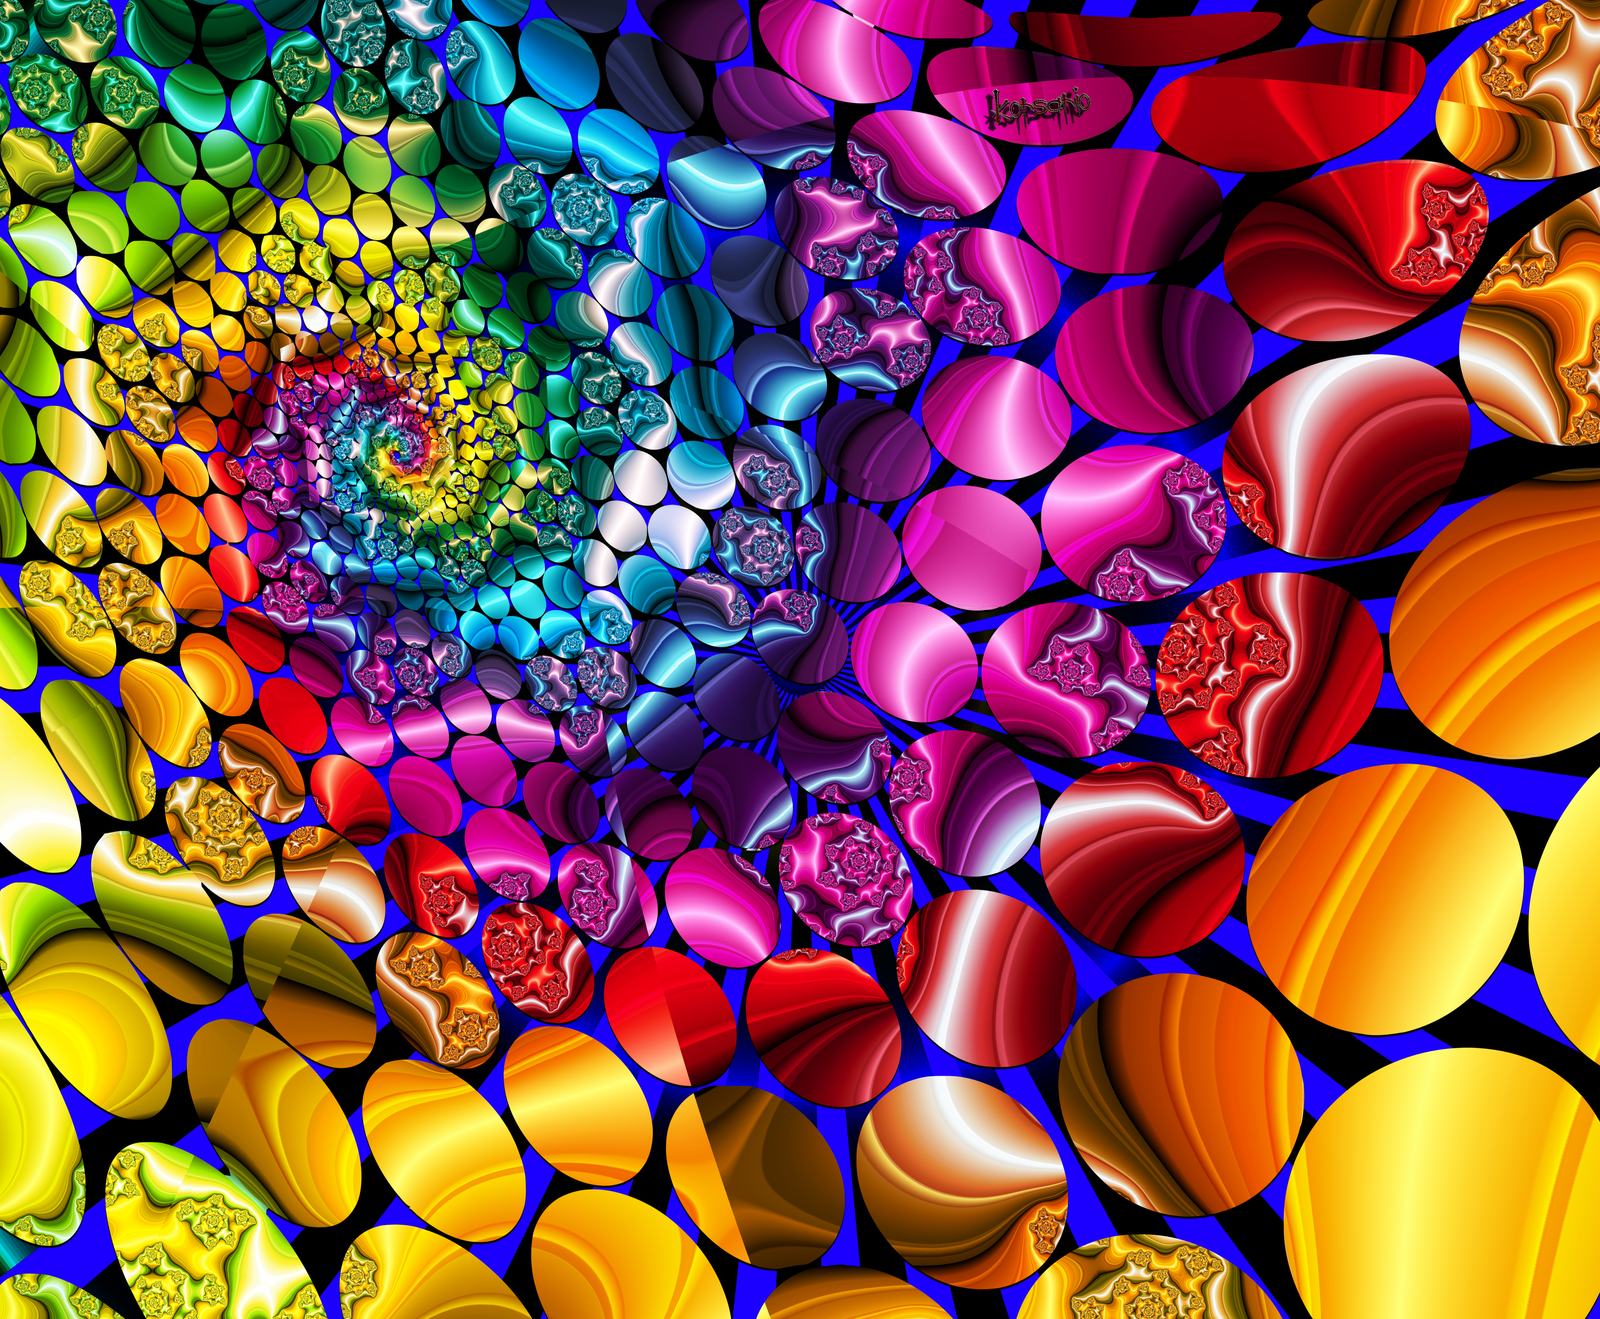 Atomic decomposition of a fractal by ivankorsario